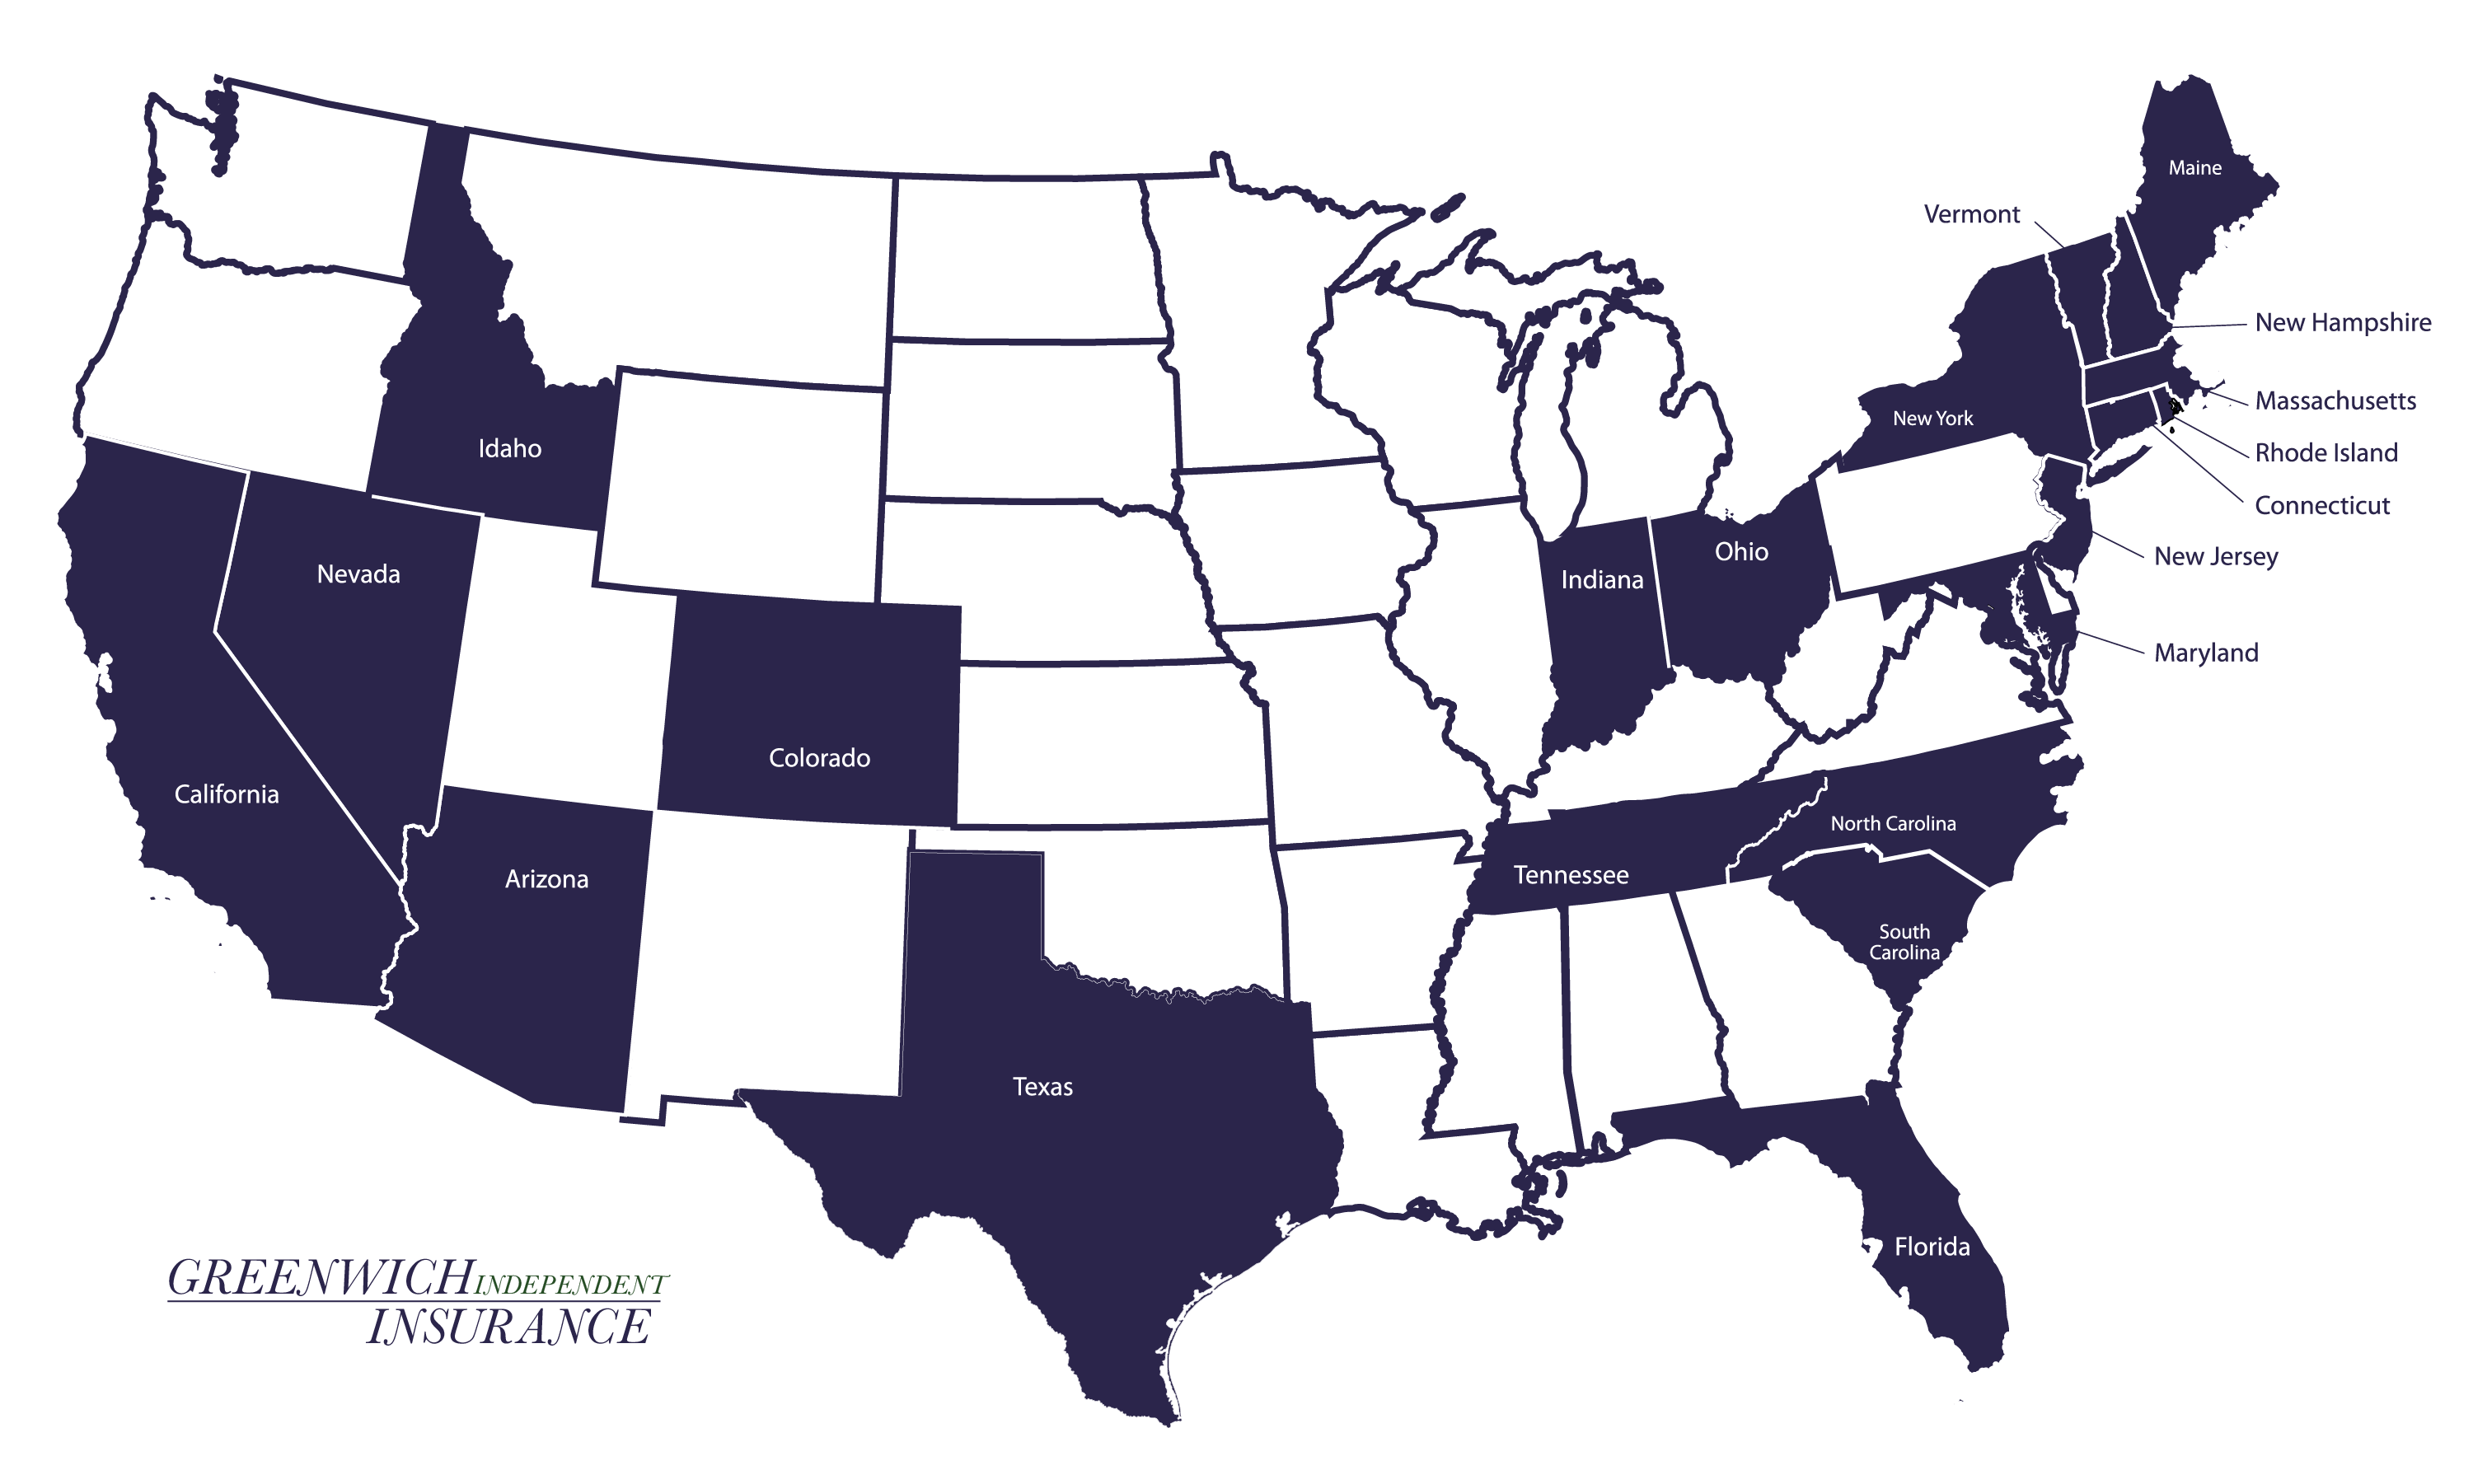 greenwich-independent-insurance-licensed-states-01